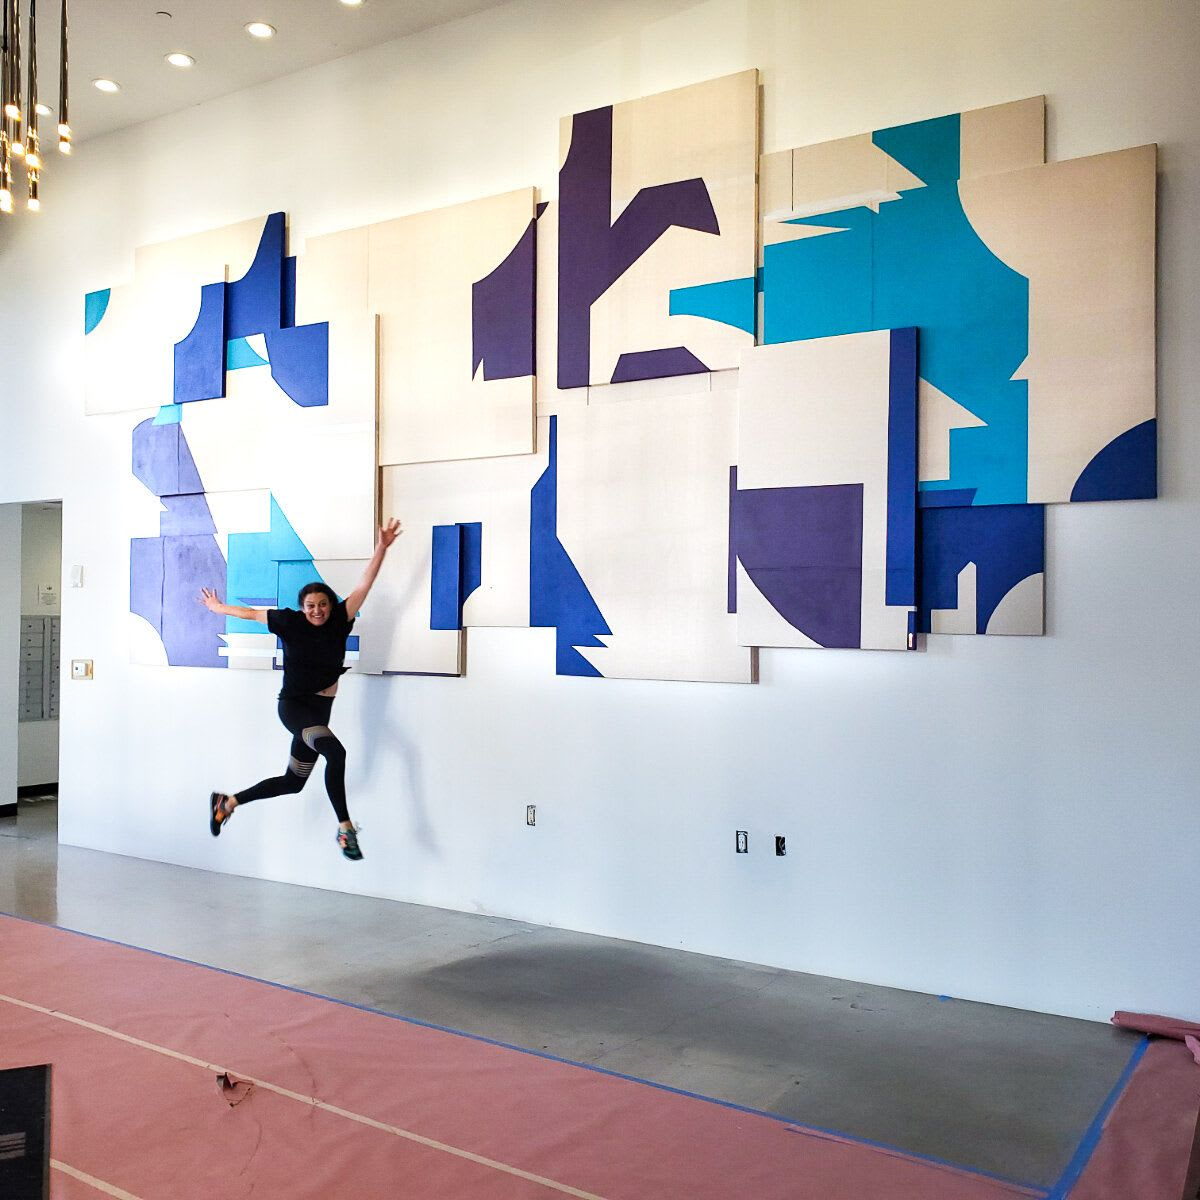 Layered Geometric Wall Sculpture with Blue Accents